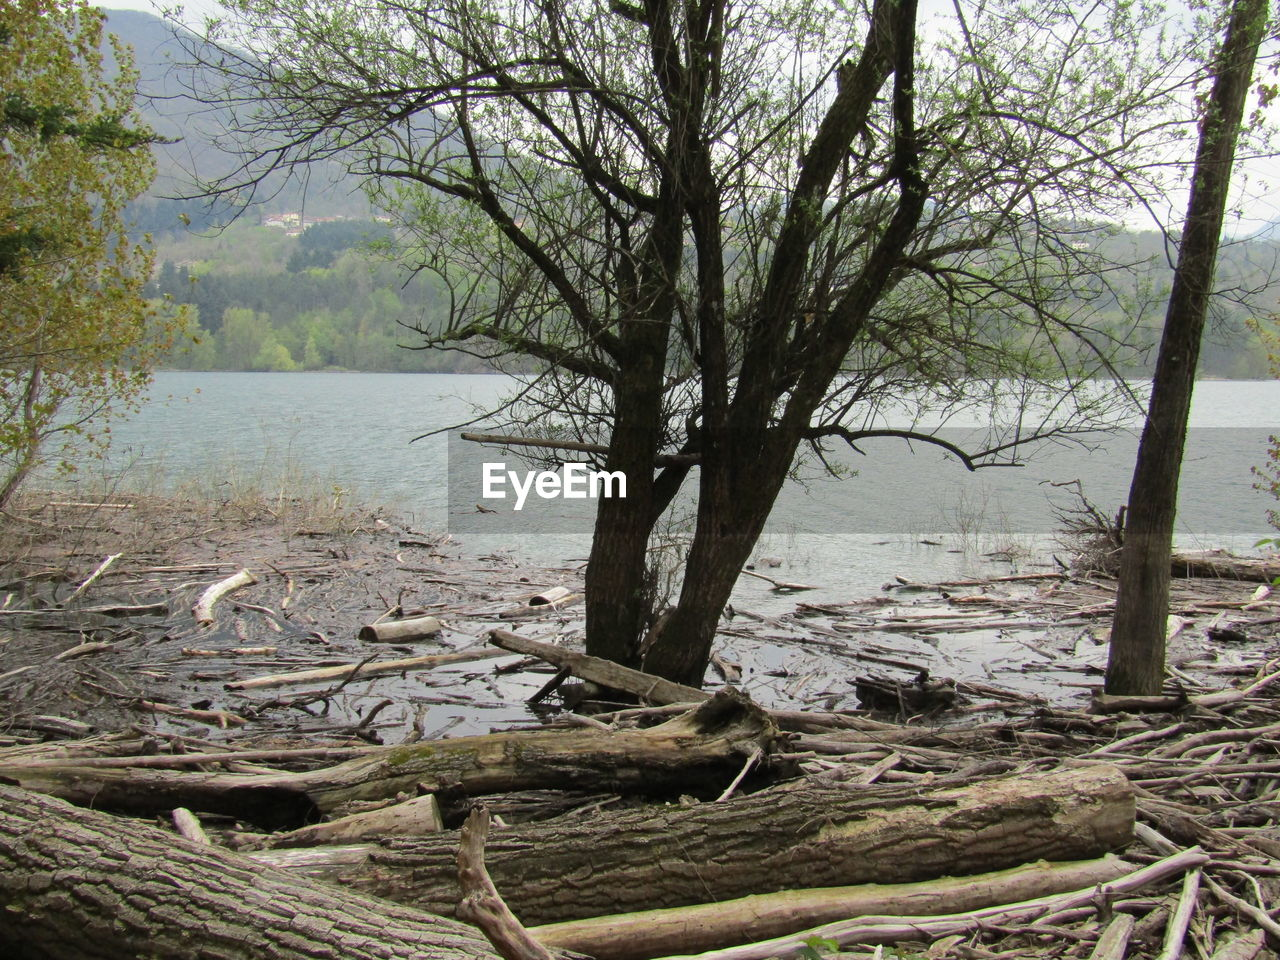 tree, plant, water, forest, tranquility, nature, land, wood, tree trunk, trunk, day, no people, lake, fallen tree, log, wood - material, beauty in nature, branch, non-urban scene, outdoors, driftwood, dead plant, woodland